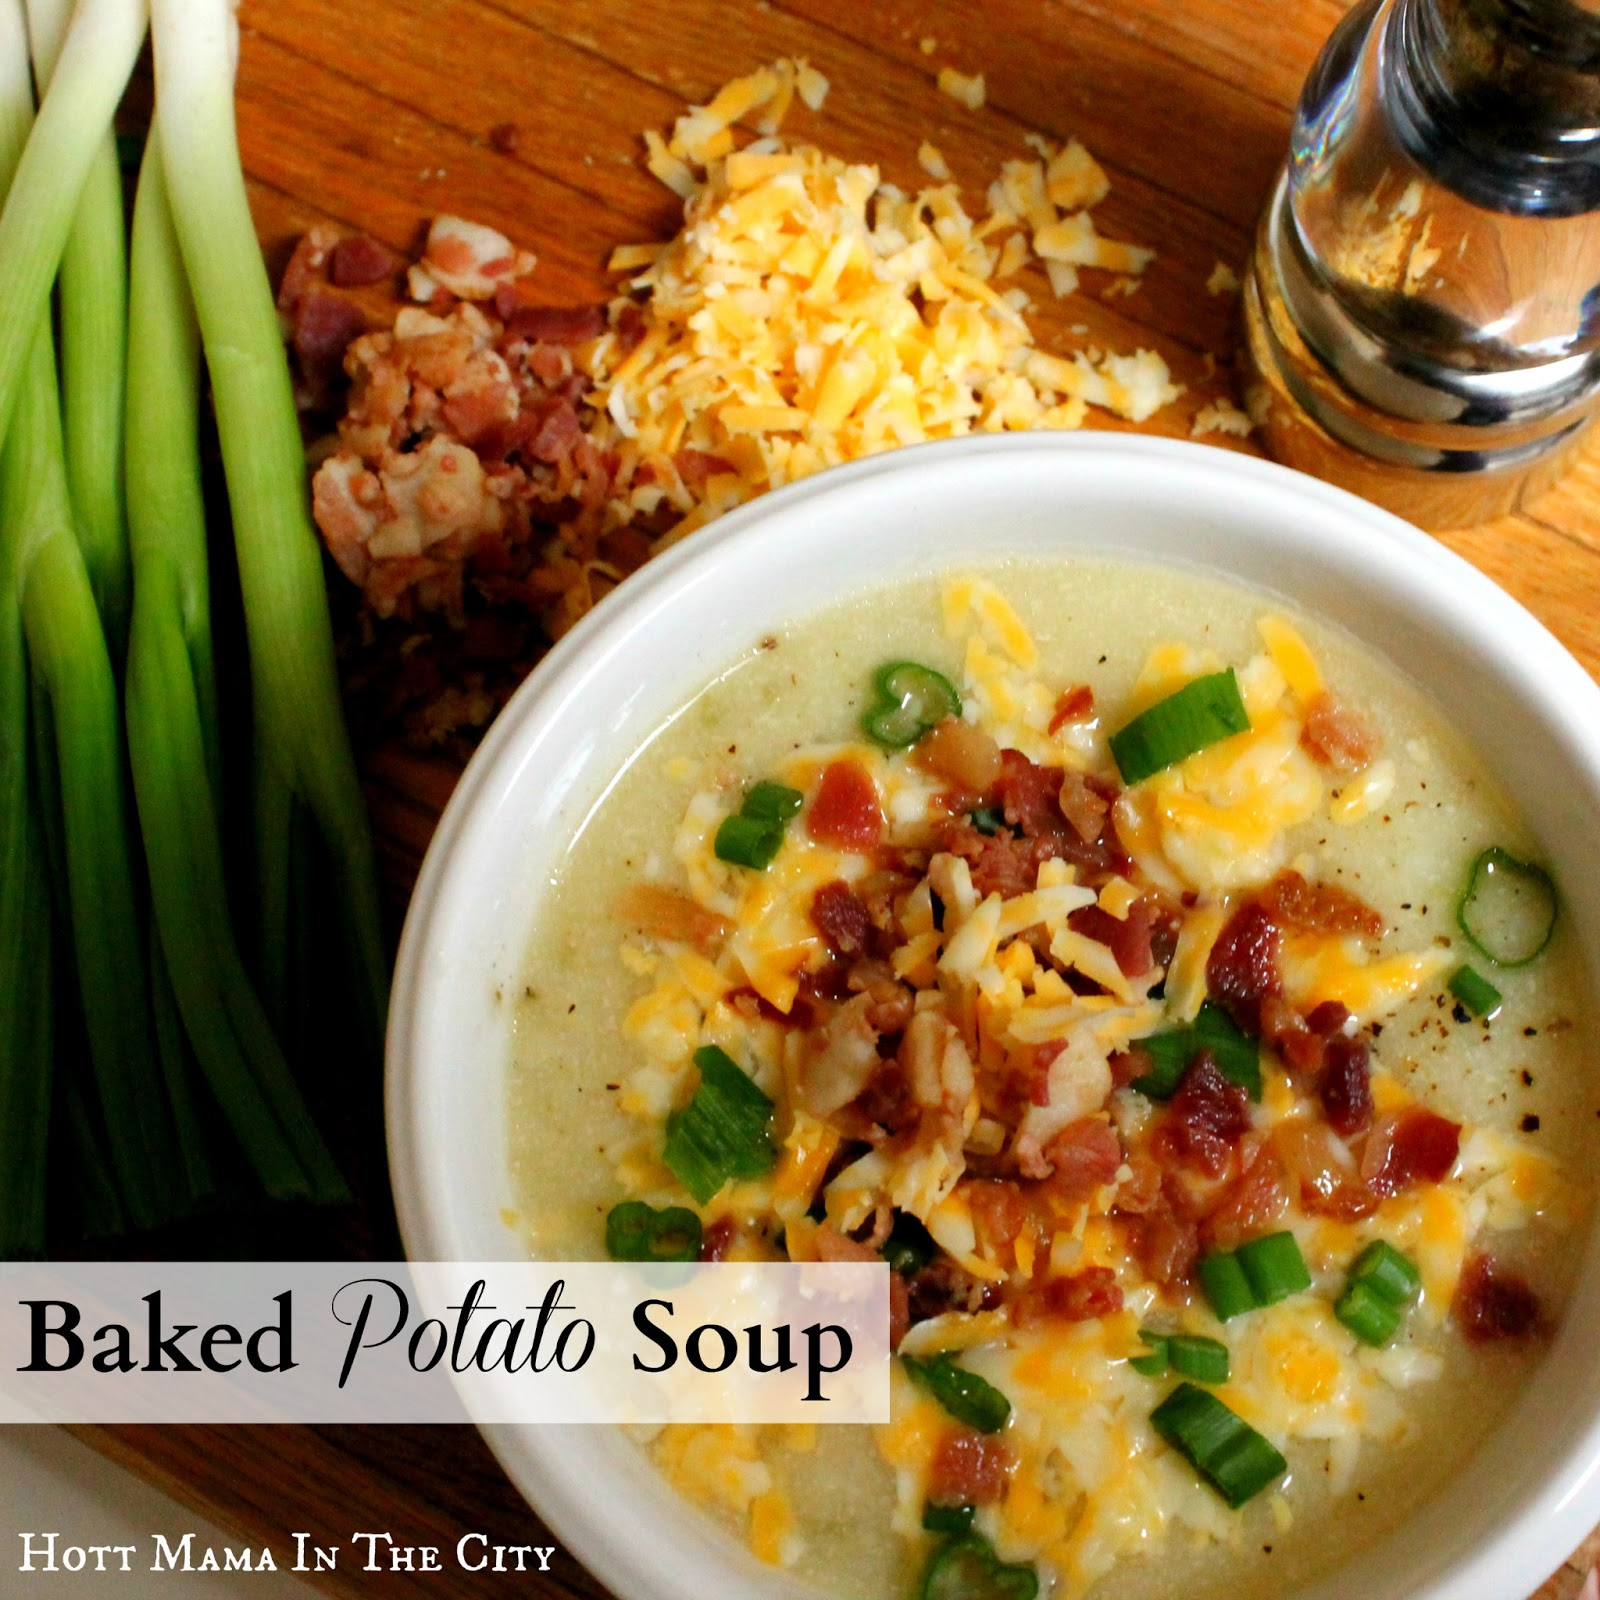 Hot Mama In The City: Baked Potato Soup Recipe